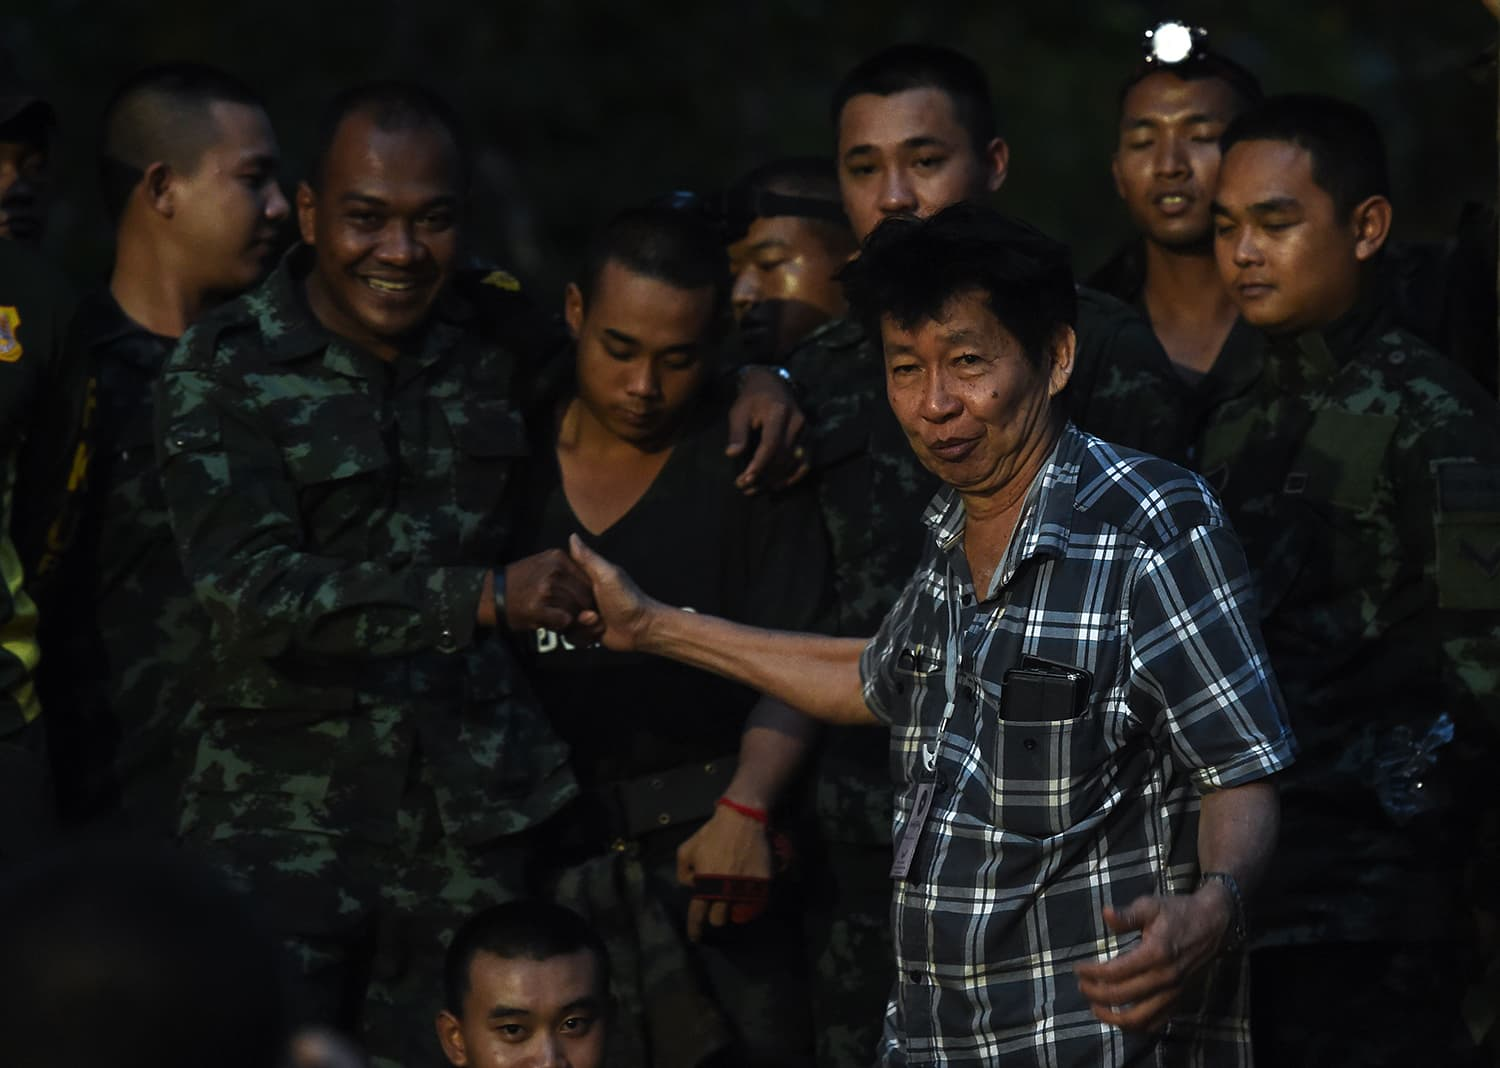 Thai soccer team rescue: Former Navy diver dies while exiting flooded caves